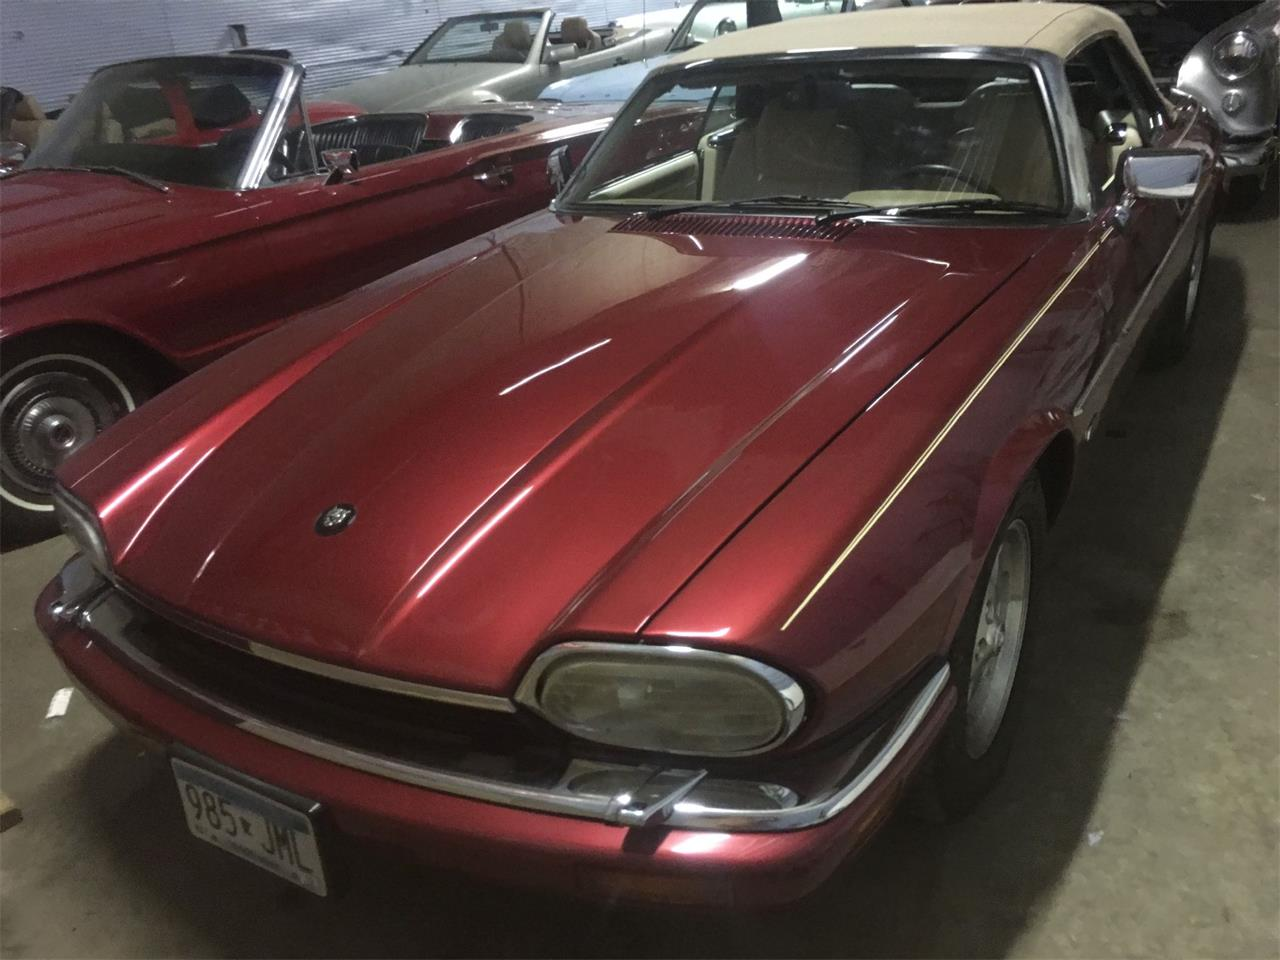 1995 Jaguar XJS for sale in Annandale, MN – photo 39